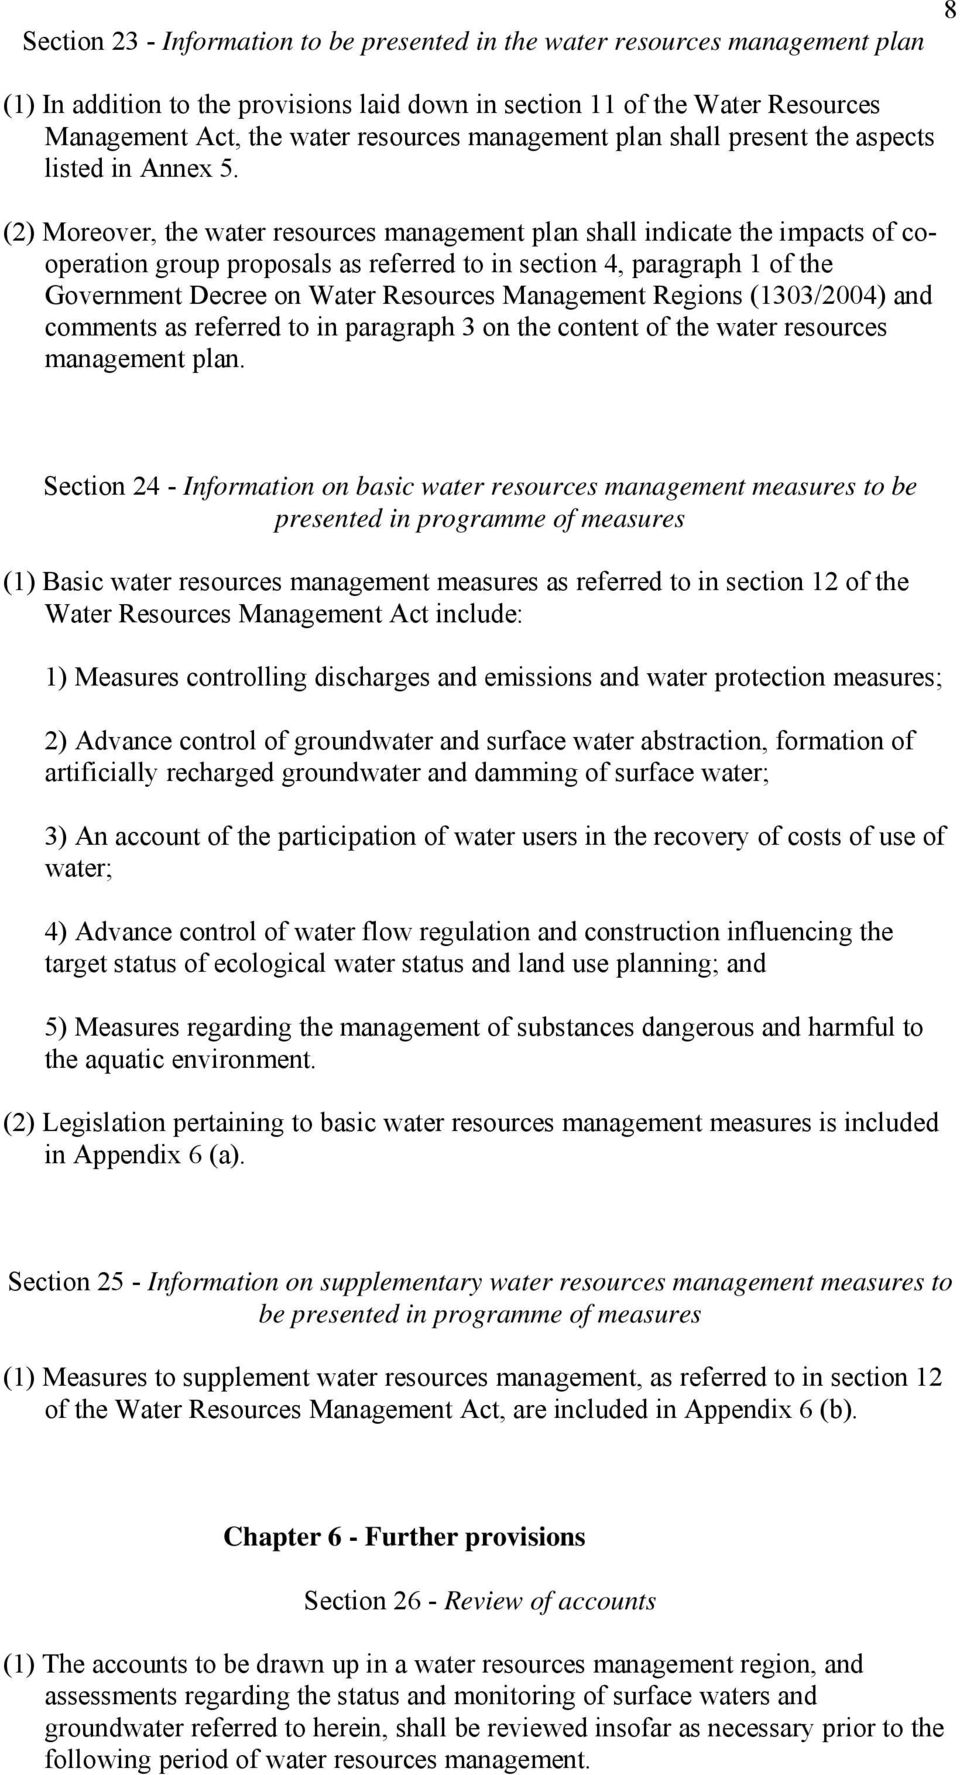 (2) Moreover, the water resources management plan shall indicate the impacts of cooperation group proposals as referred to in section 4, paragraph 1 of the Government Decree on Water Resources